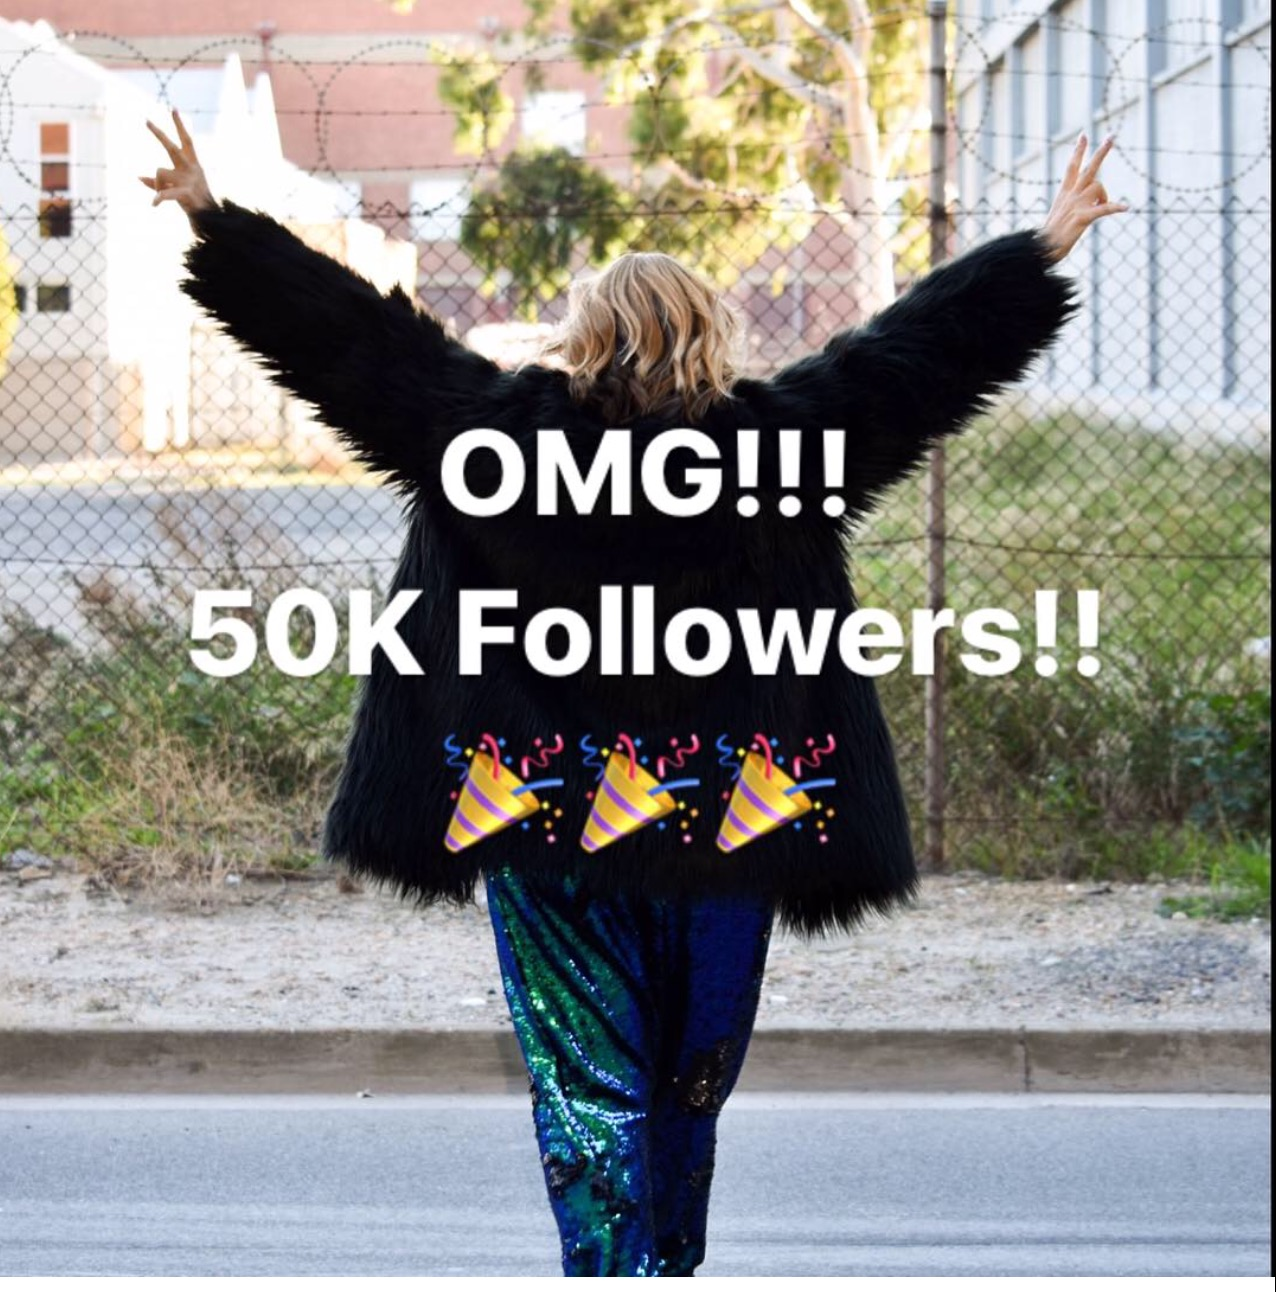 Growing your Instagram to 50K followers!